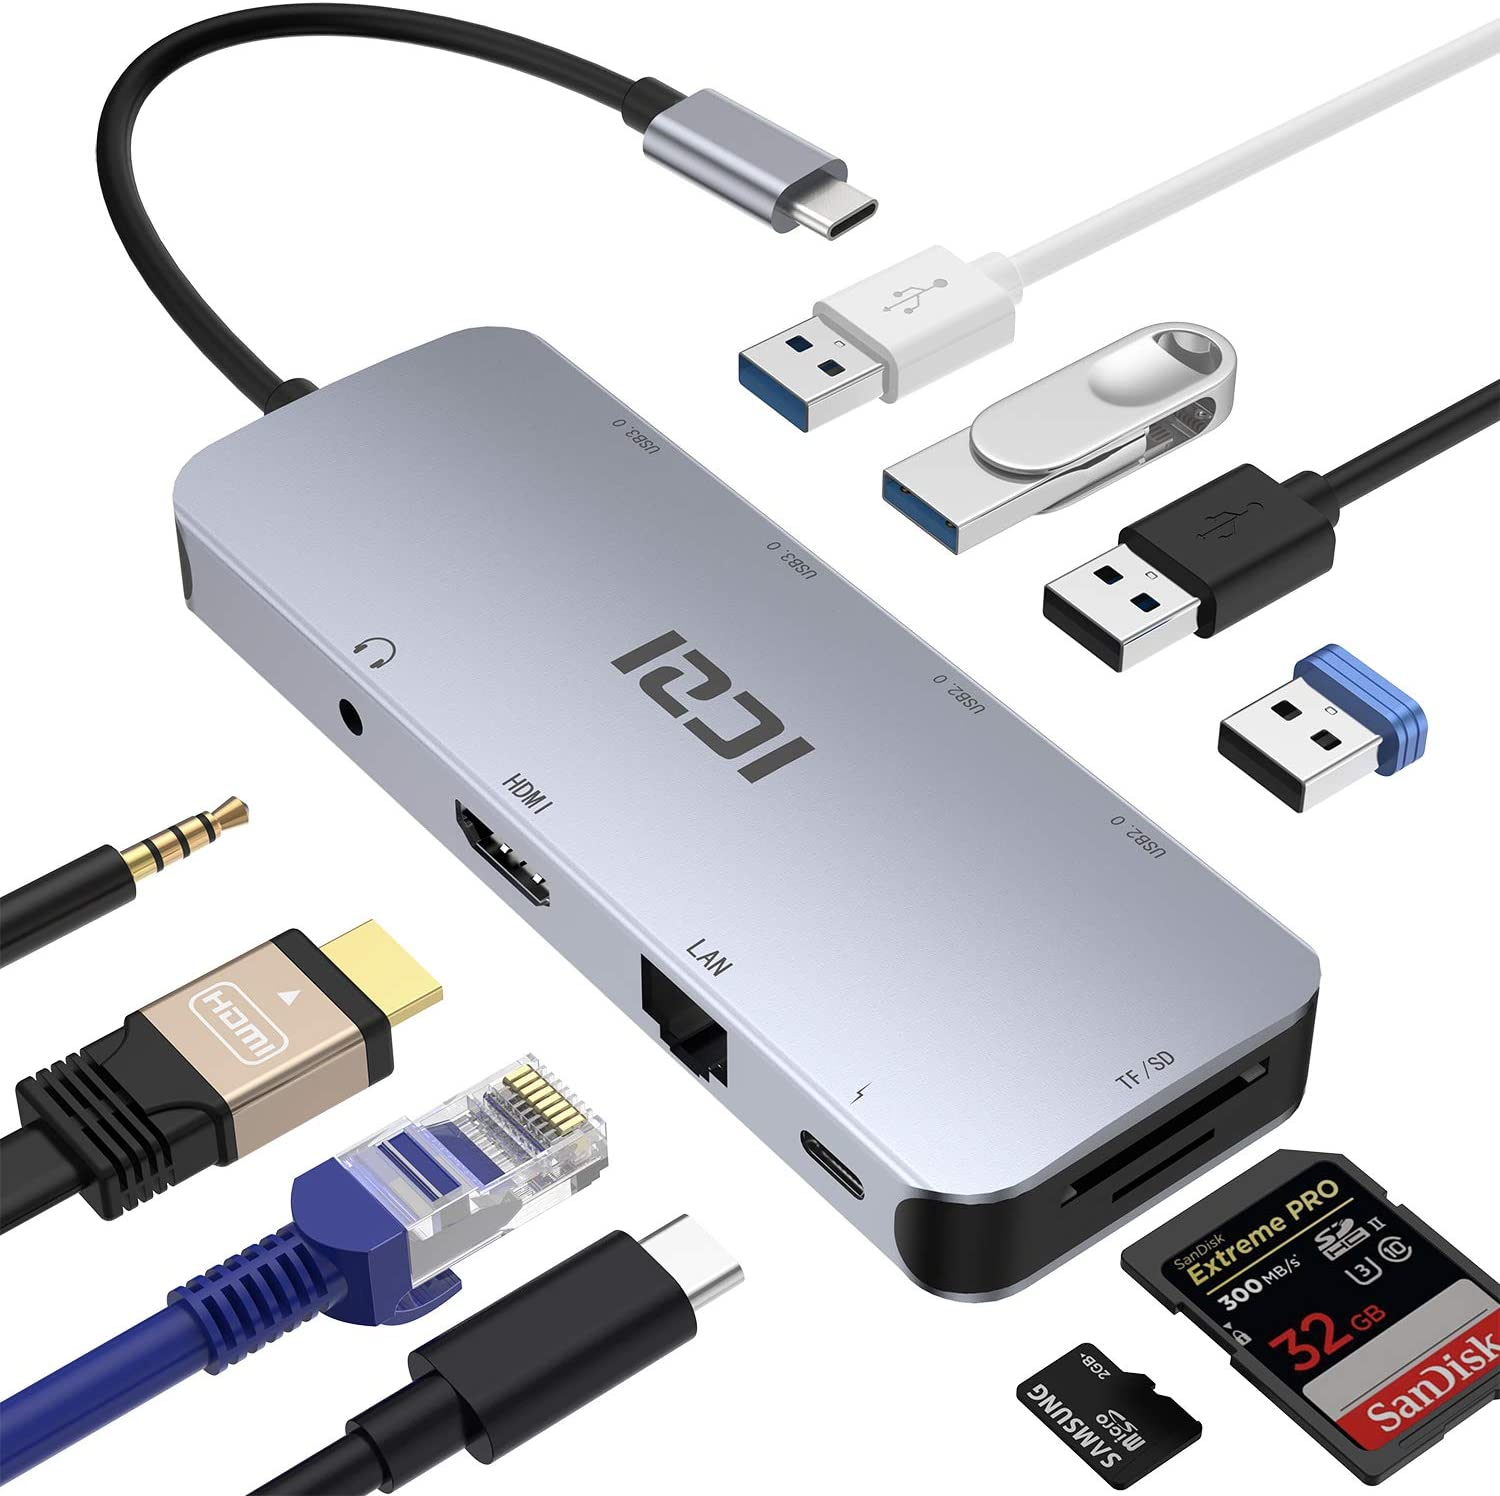 USB C HUB, ICZI 10 in 1 USB Type C to HDMI Audio Converter Dongle, RJ-45 Ethernet, USB 3.0 Type A Ports, SD/TF Slots for MacBook Pro 2018 and Samsung Dex Mode- Aluminum Body